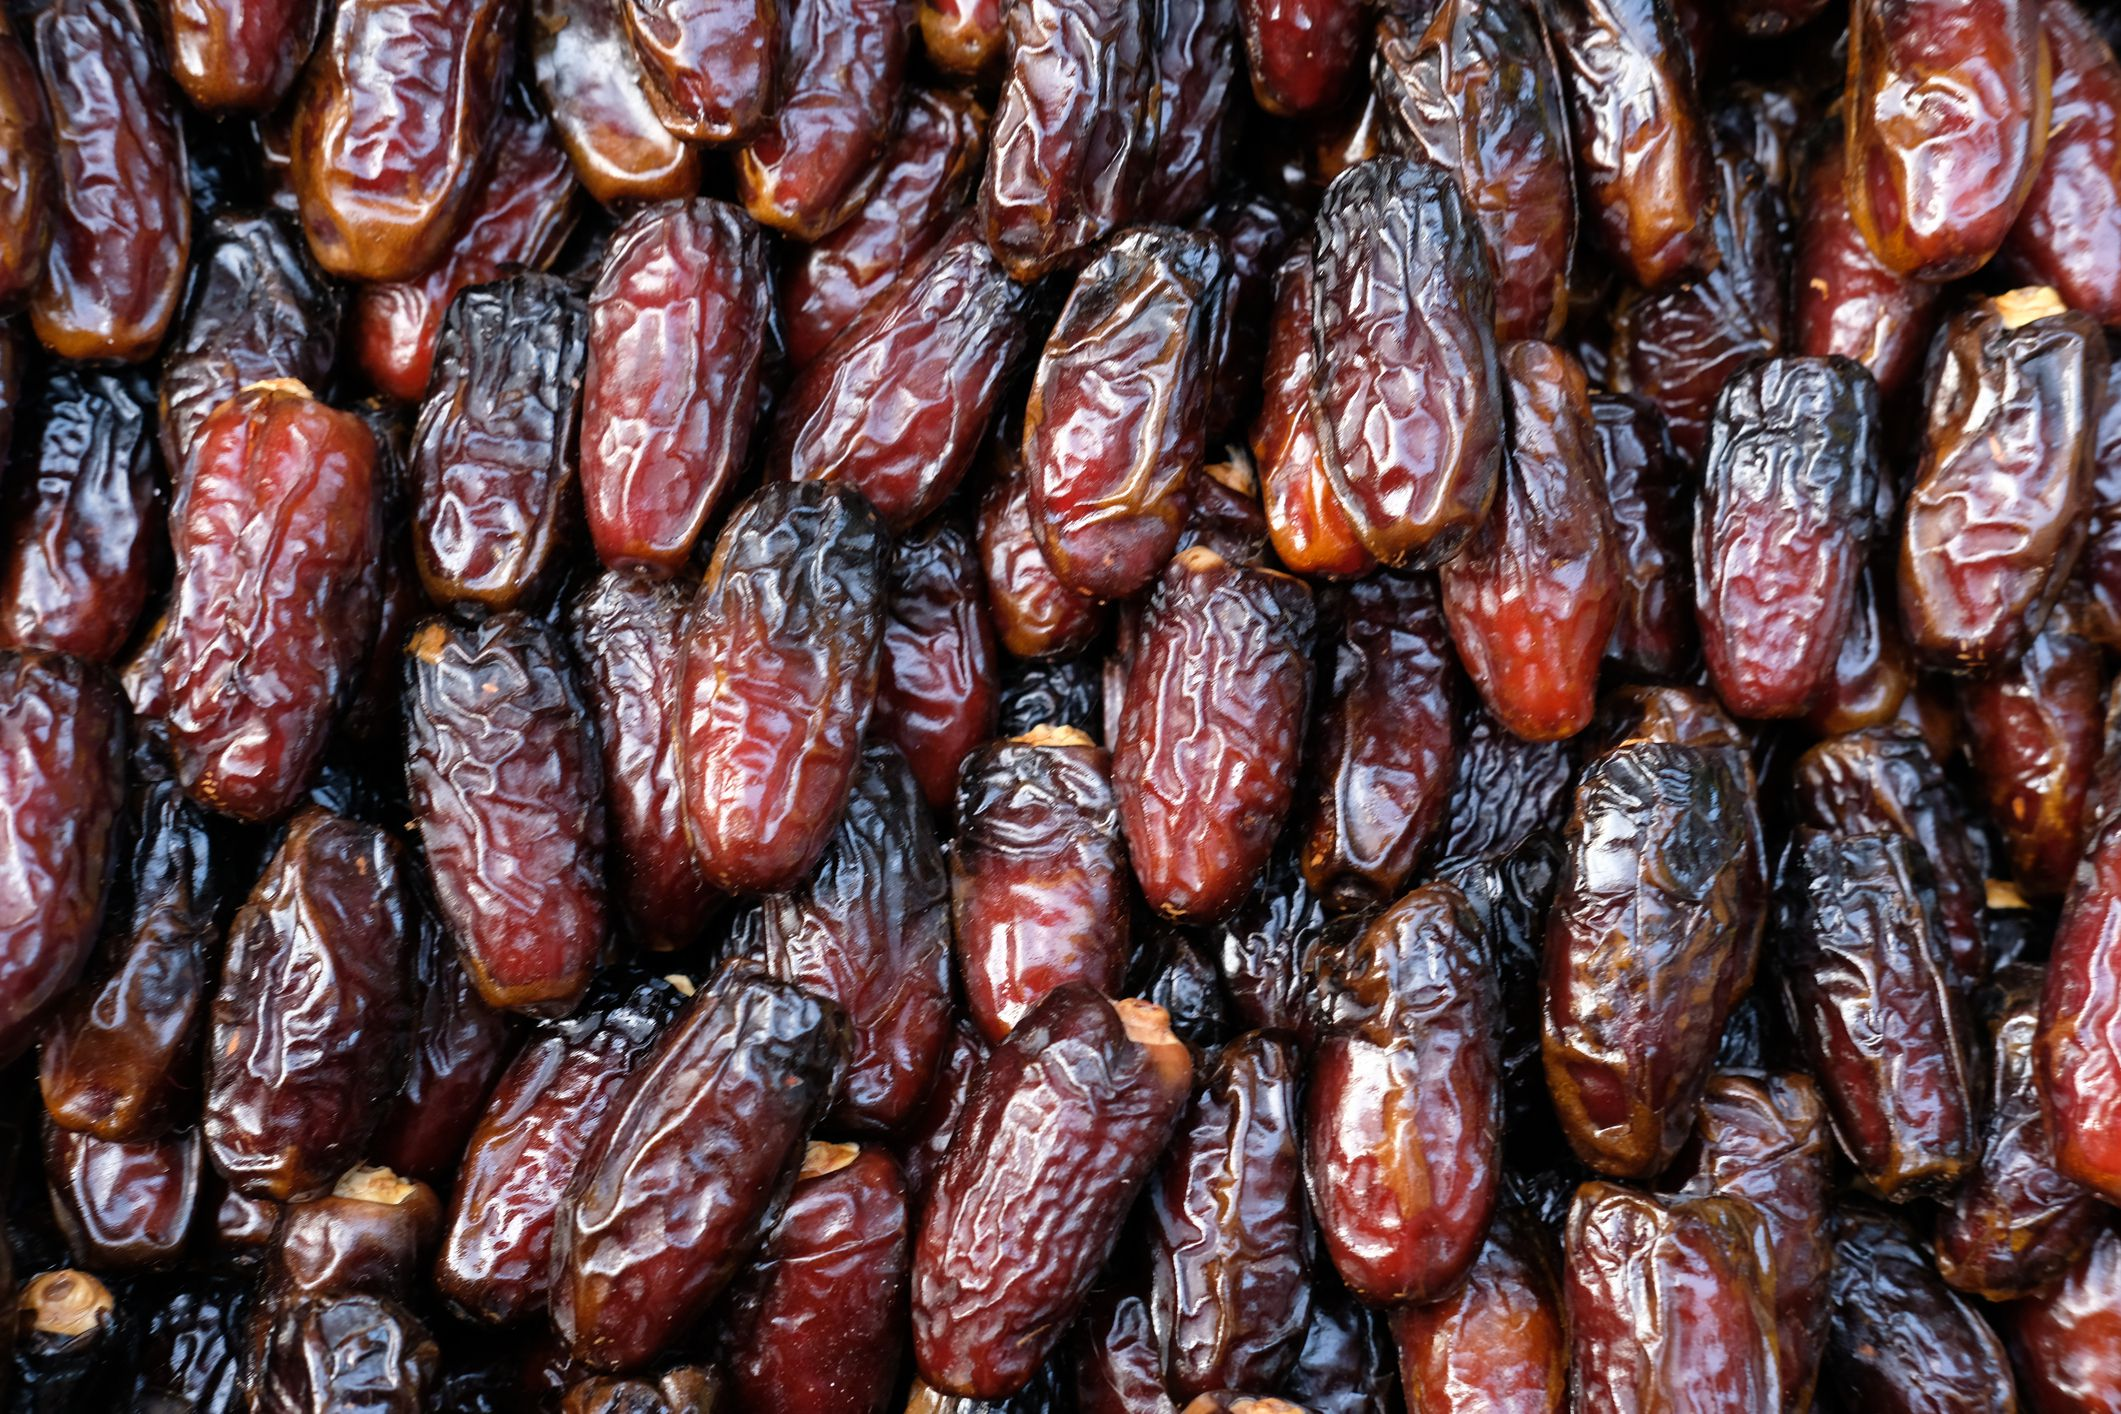 Dates for sale in Morocco